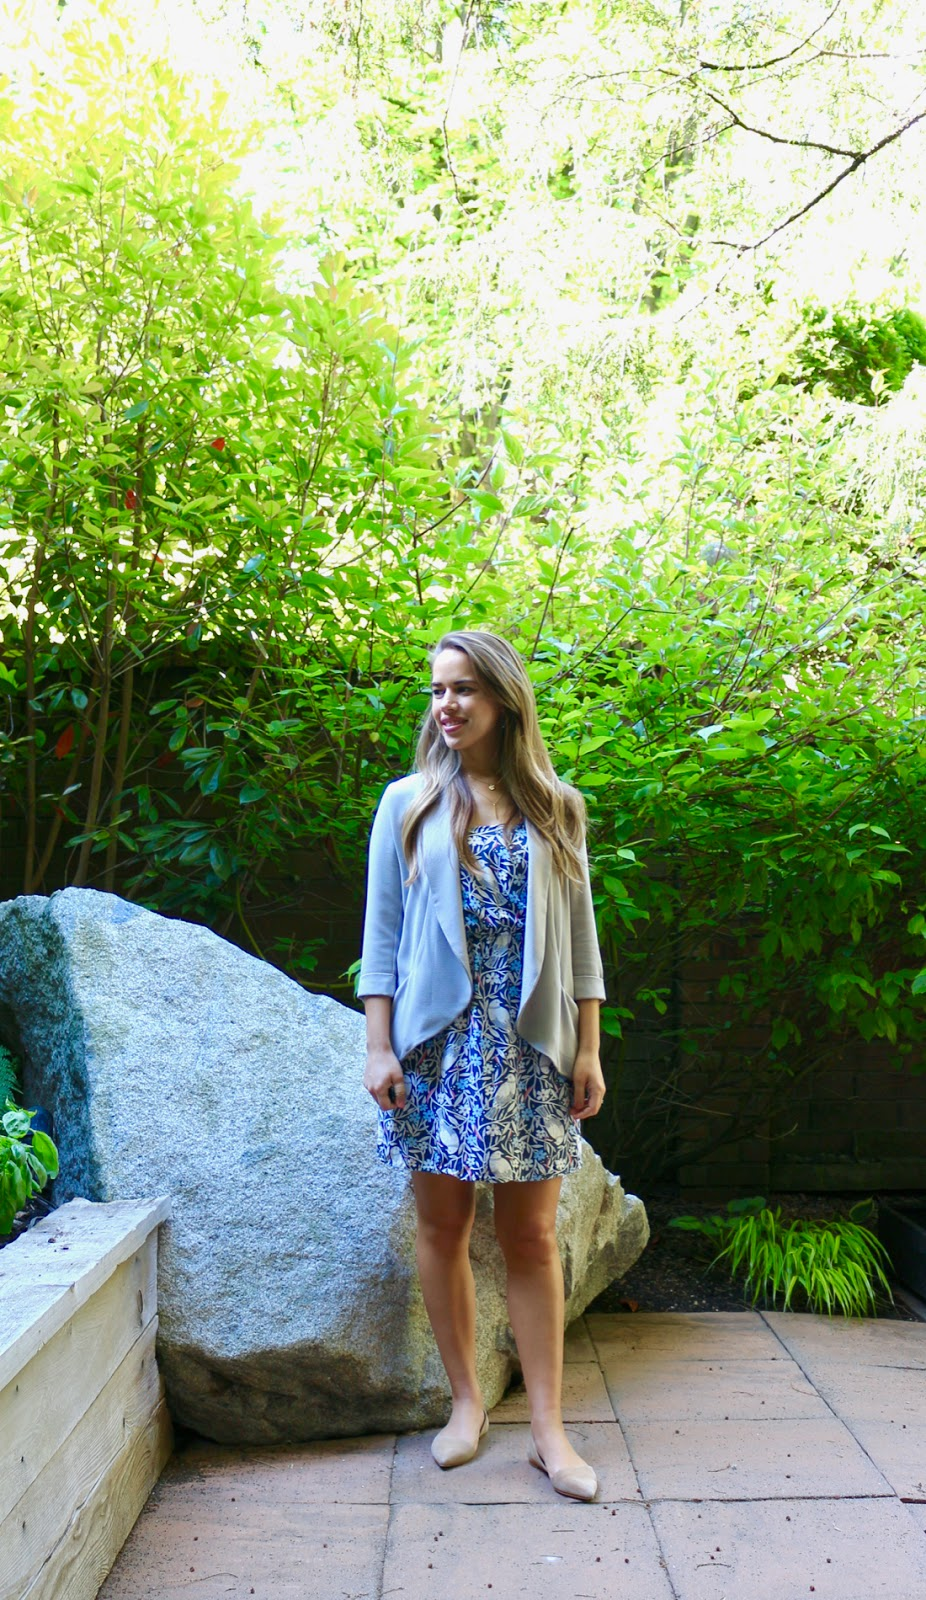 Jules in Flats - Summer Dress with Drapey Blazer (Business Casual Spring Workwear on a Budget)